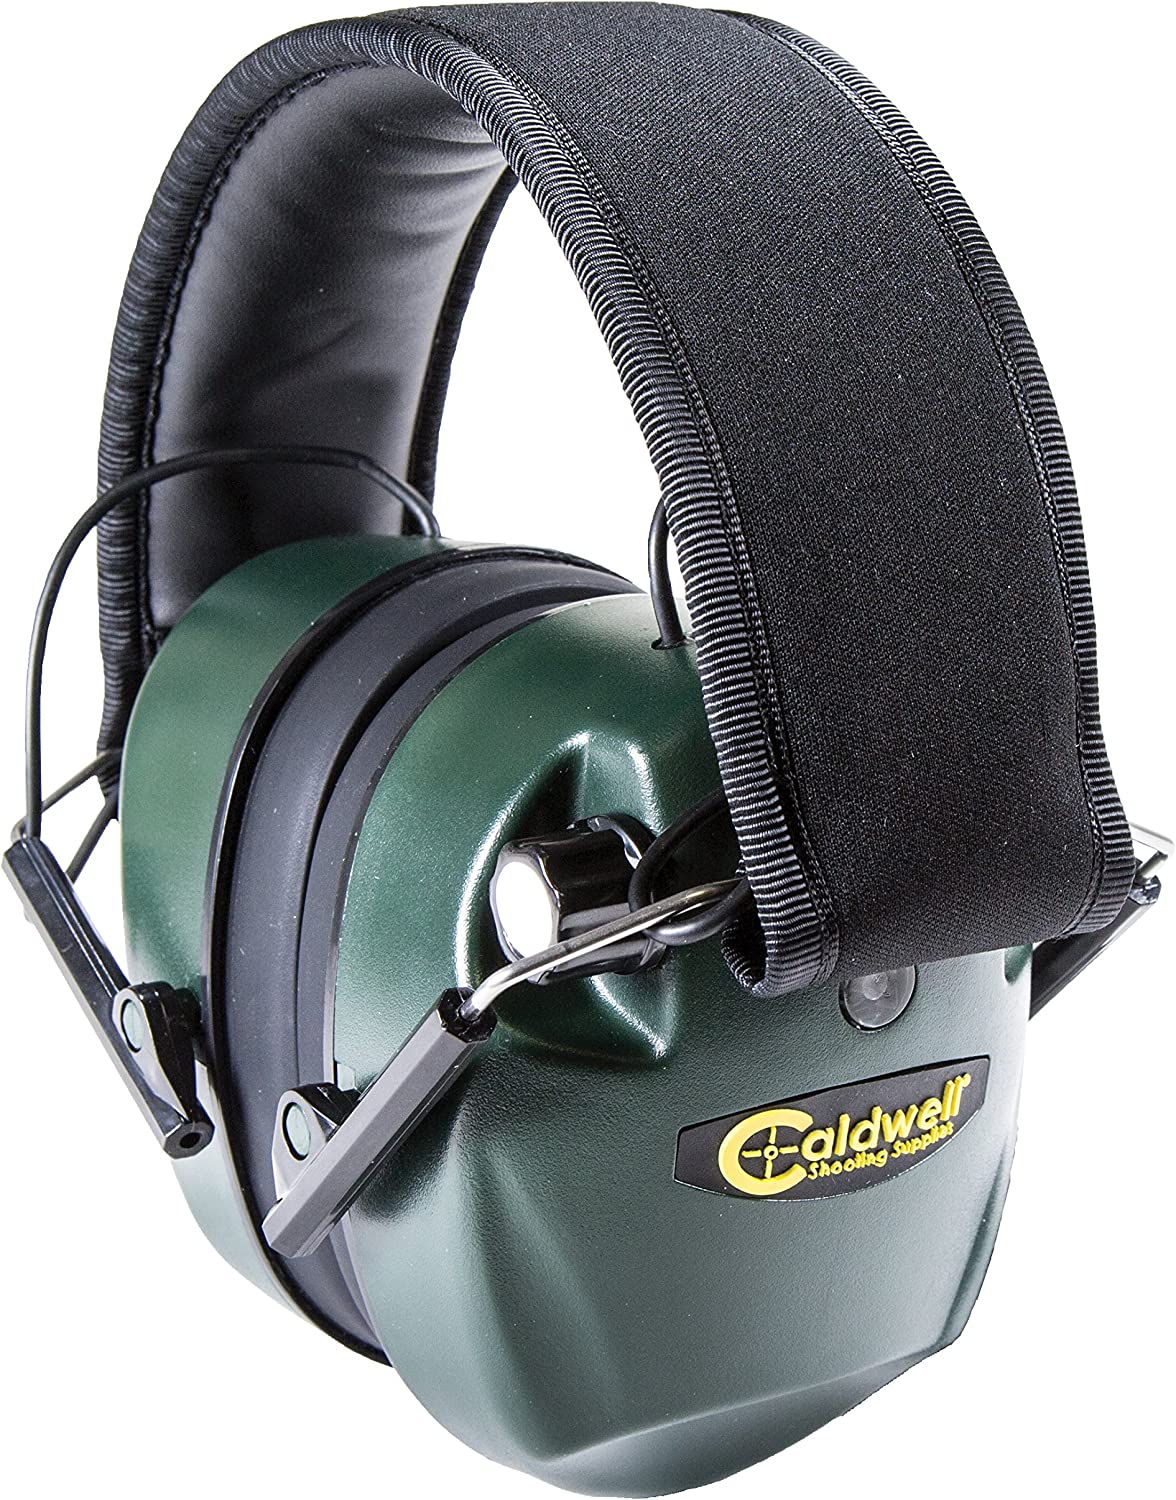 Caldwell E-Max Electronic 25 NRR Hearing Protection with Sound Amplification and Adjustable Earmuffs for Shooting, Hunting and Range, Green